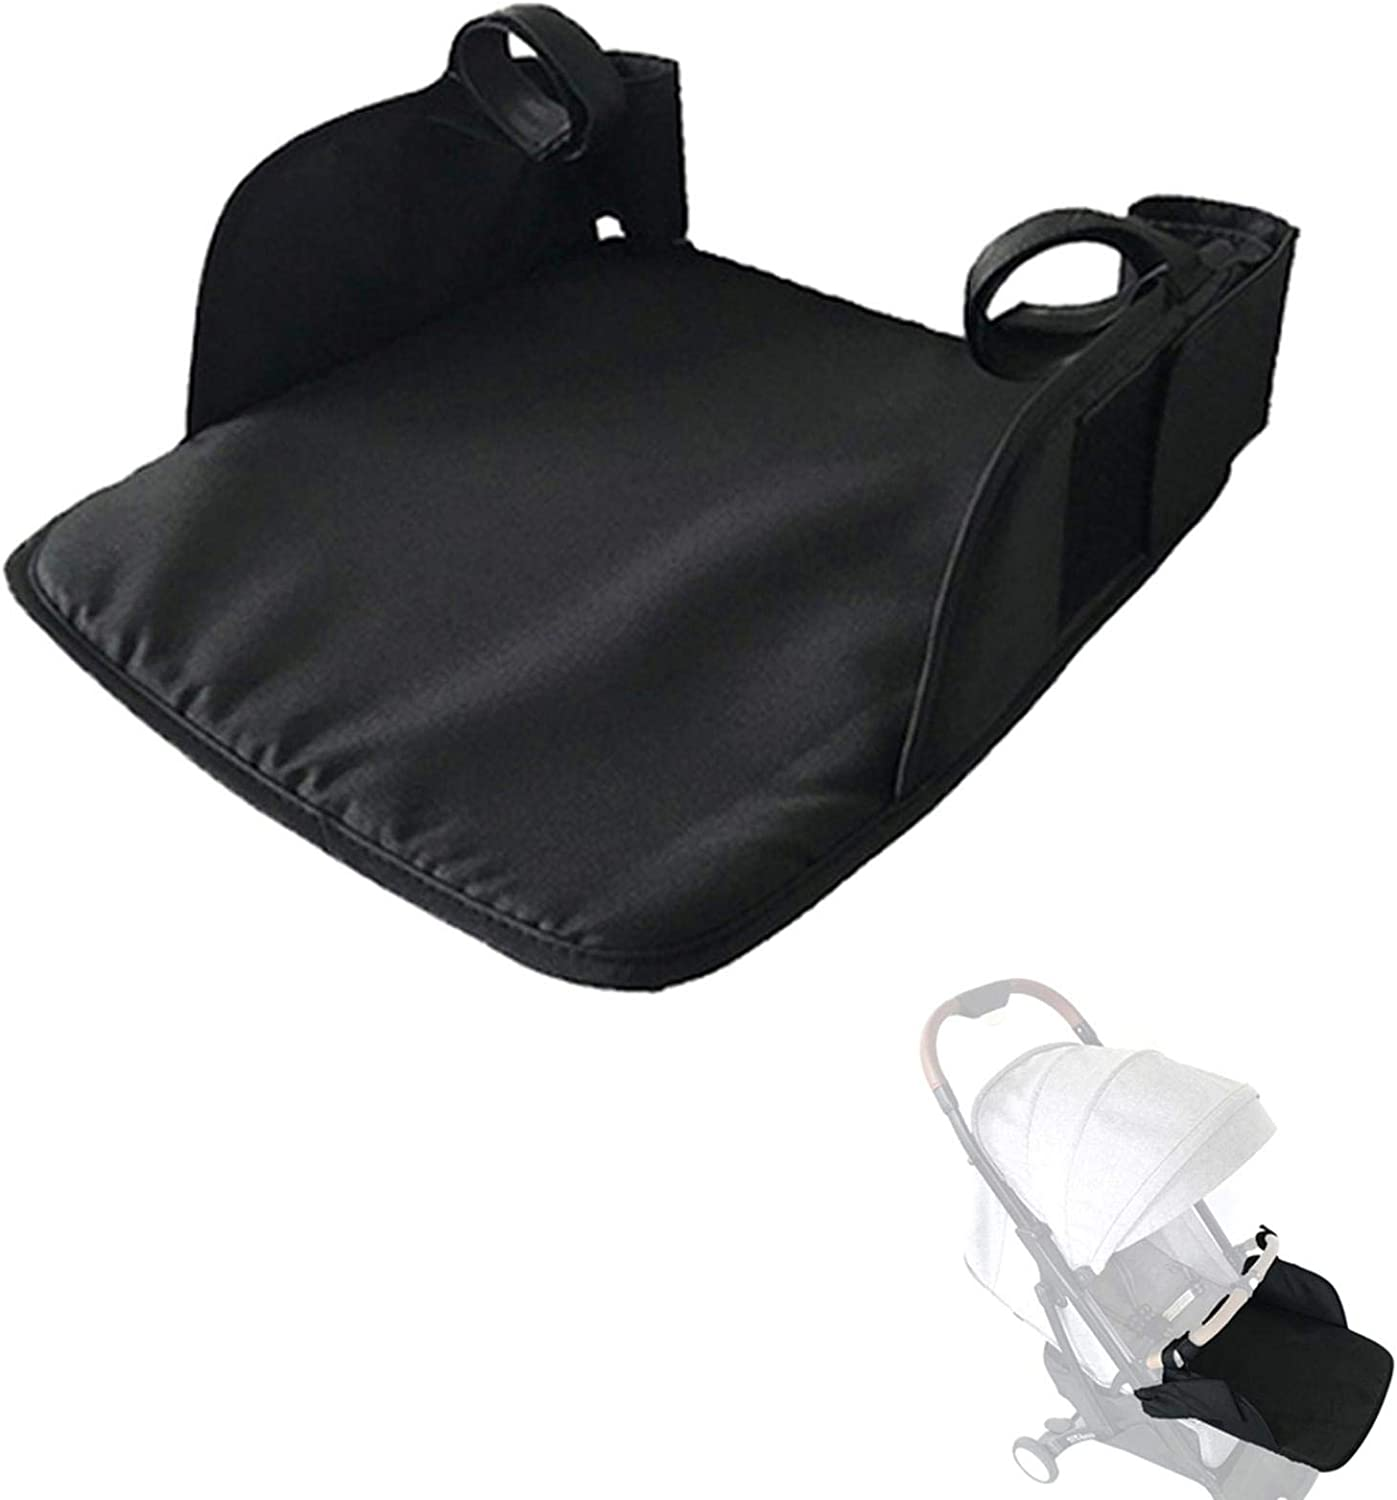 Topaty Universal Baby Stroller Footrest Waterproof San Albuquerque Mall Diego Mall Foot